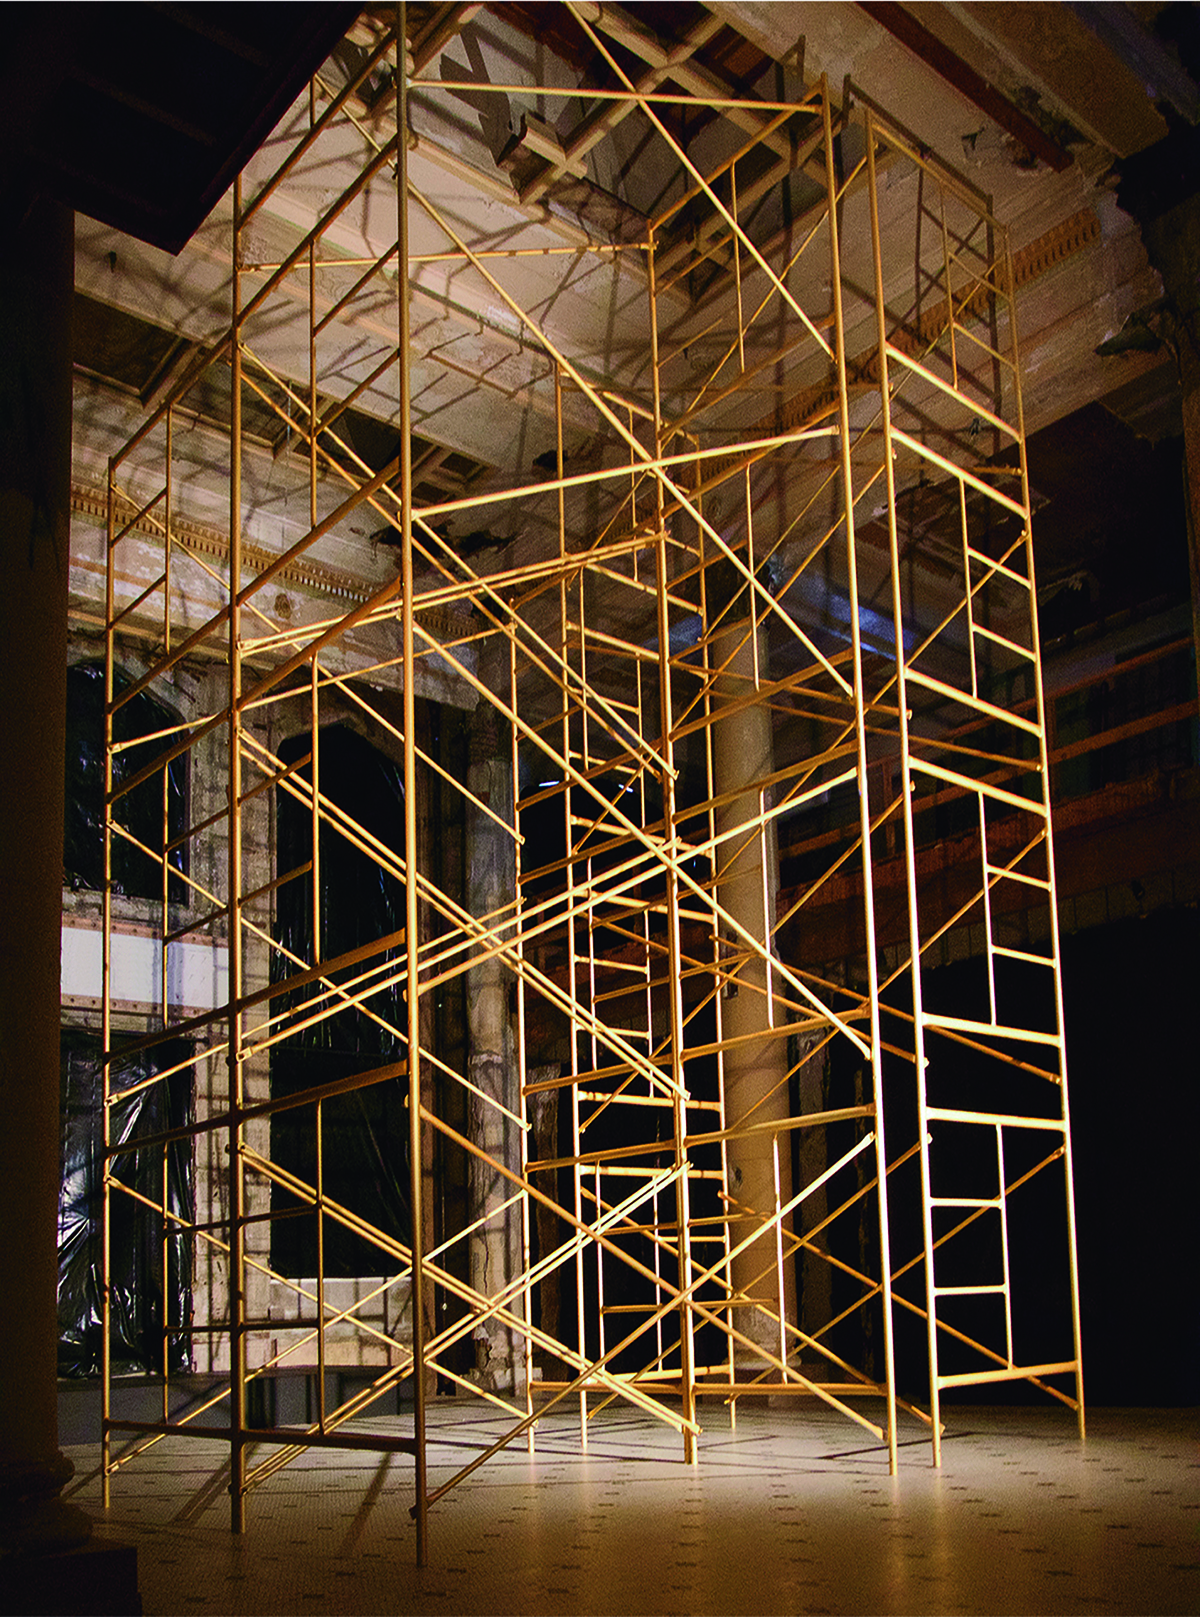 Mineral Spirits,  2016. Paint, scaffolding, looped audio. Dimensions - 68'x43'x23'. Site-specific installation for  Portland 2016, A Biennial of Contemporary Ar t. Presented by Disjecta. Astor Hotel, Astoria, OR. Curator Michelle Grabner.